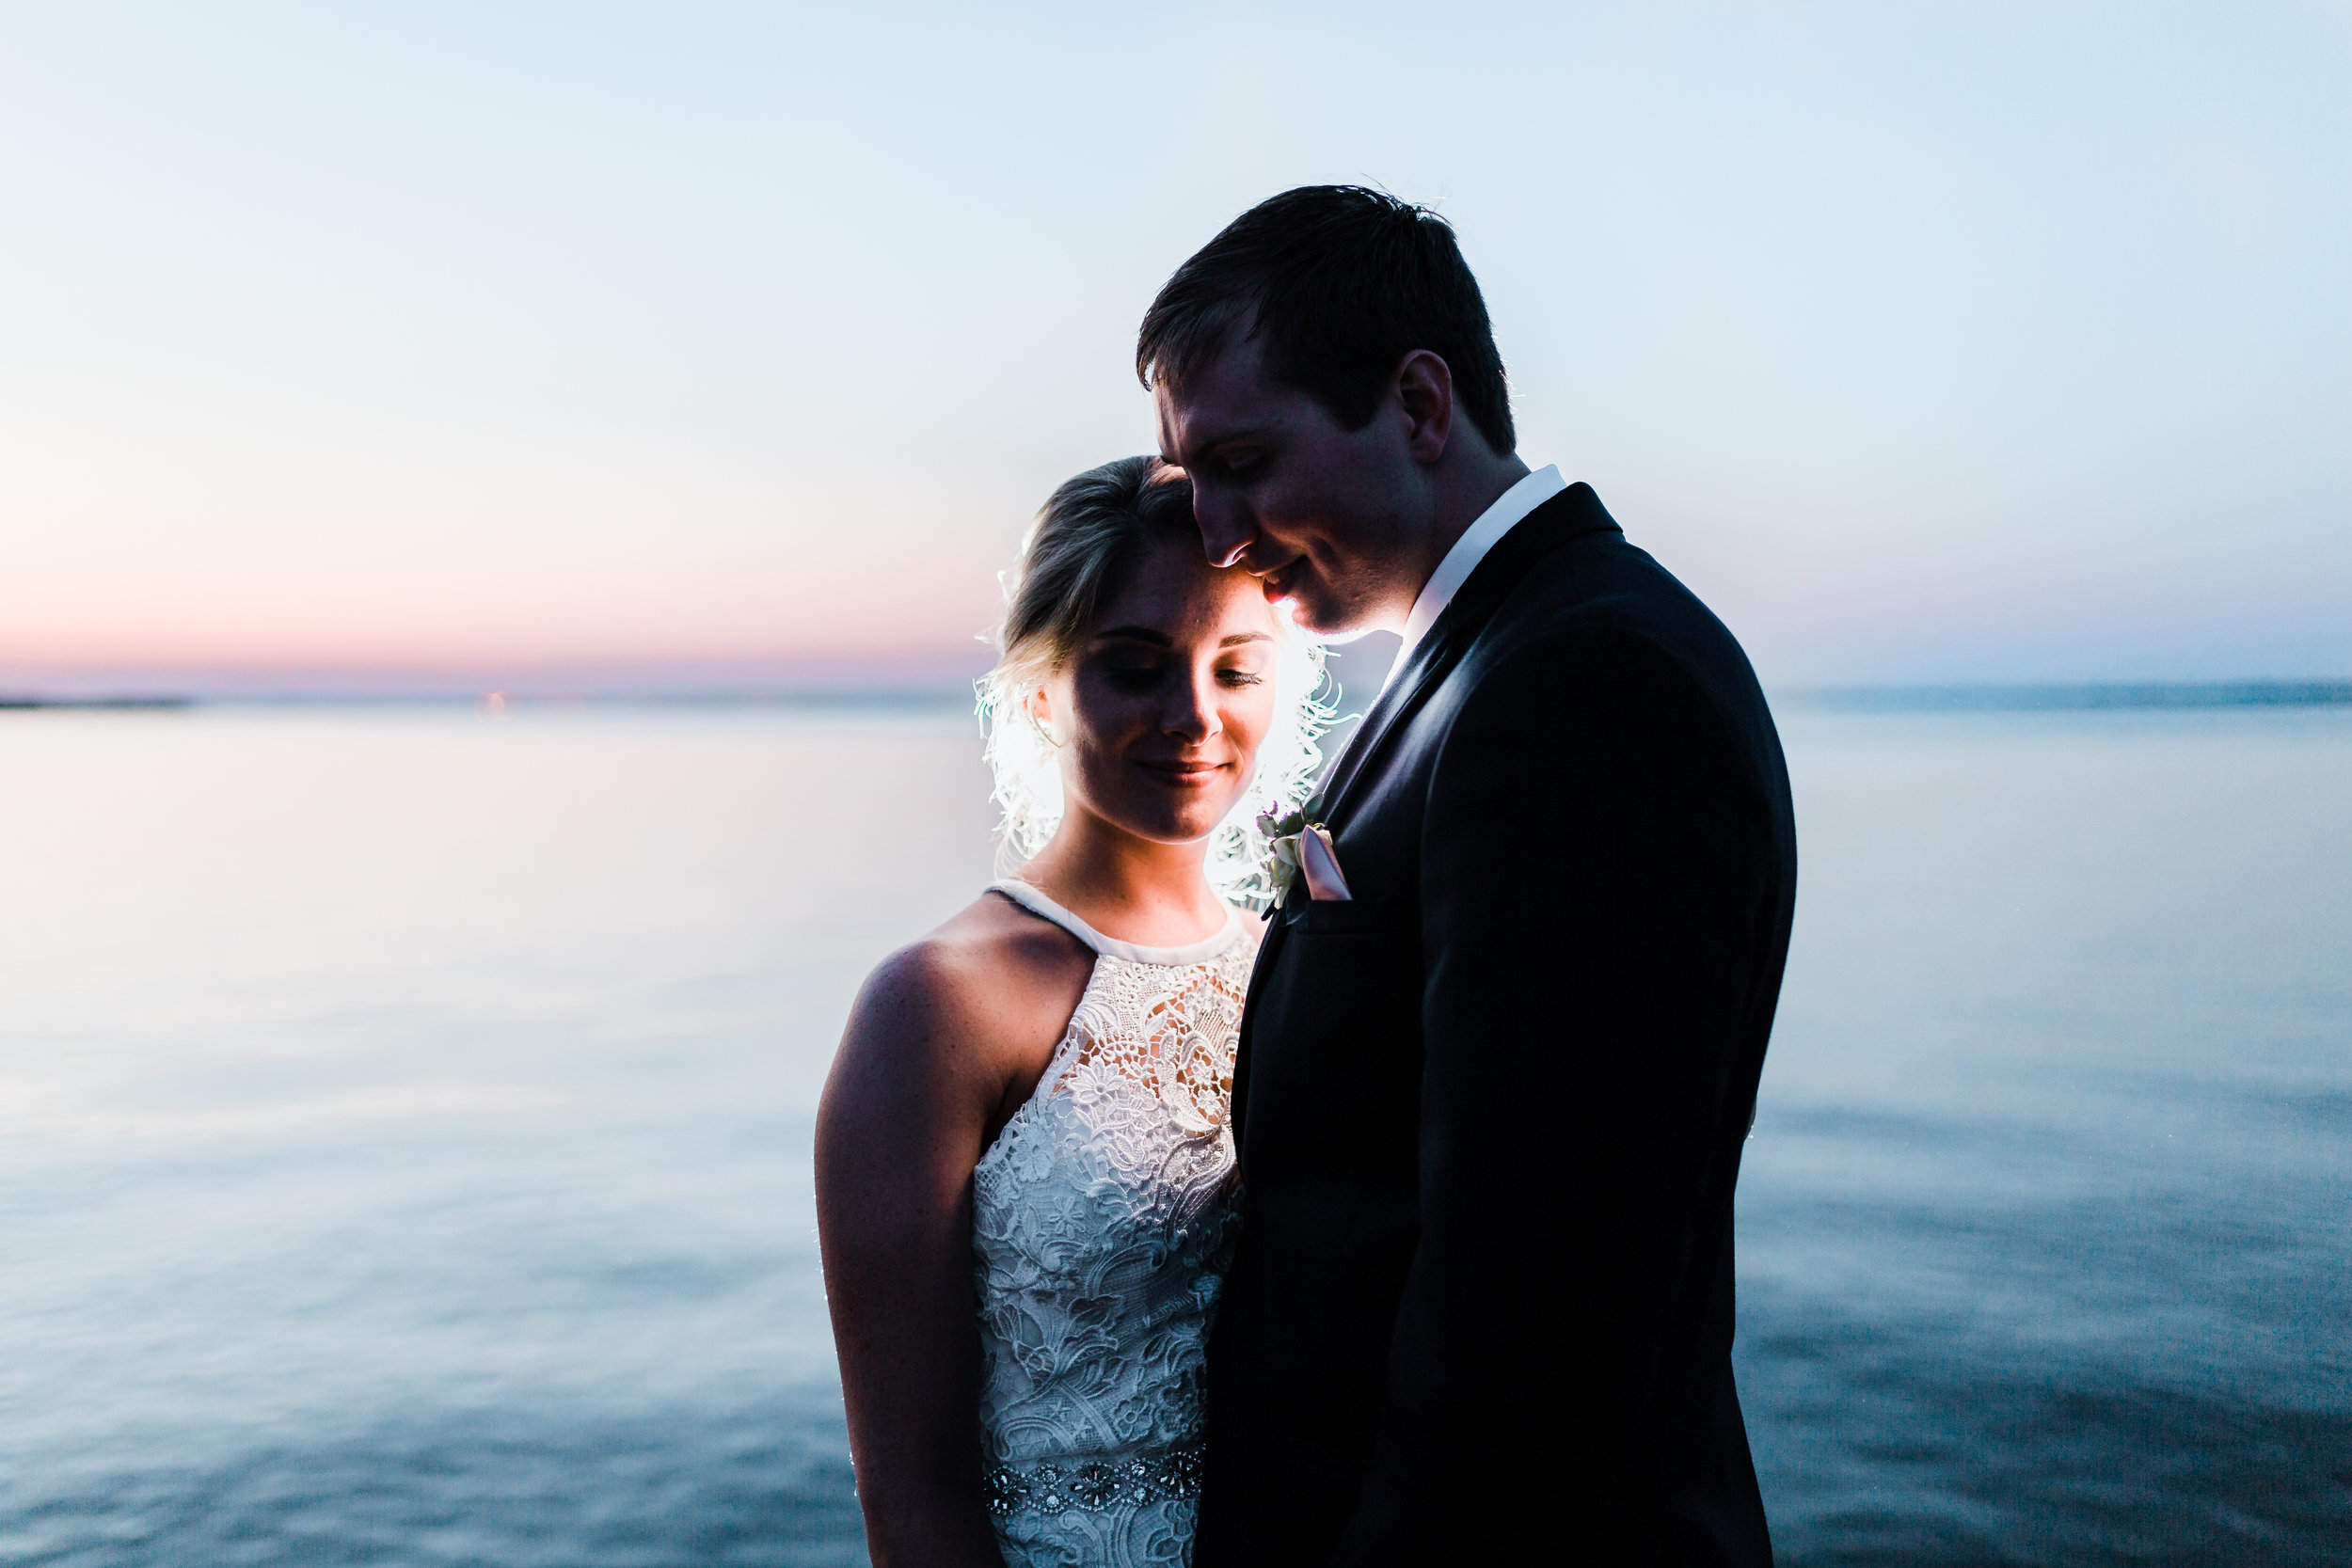 bride and groom at night by the water in maryland - md wedding venue - photographer